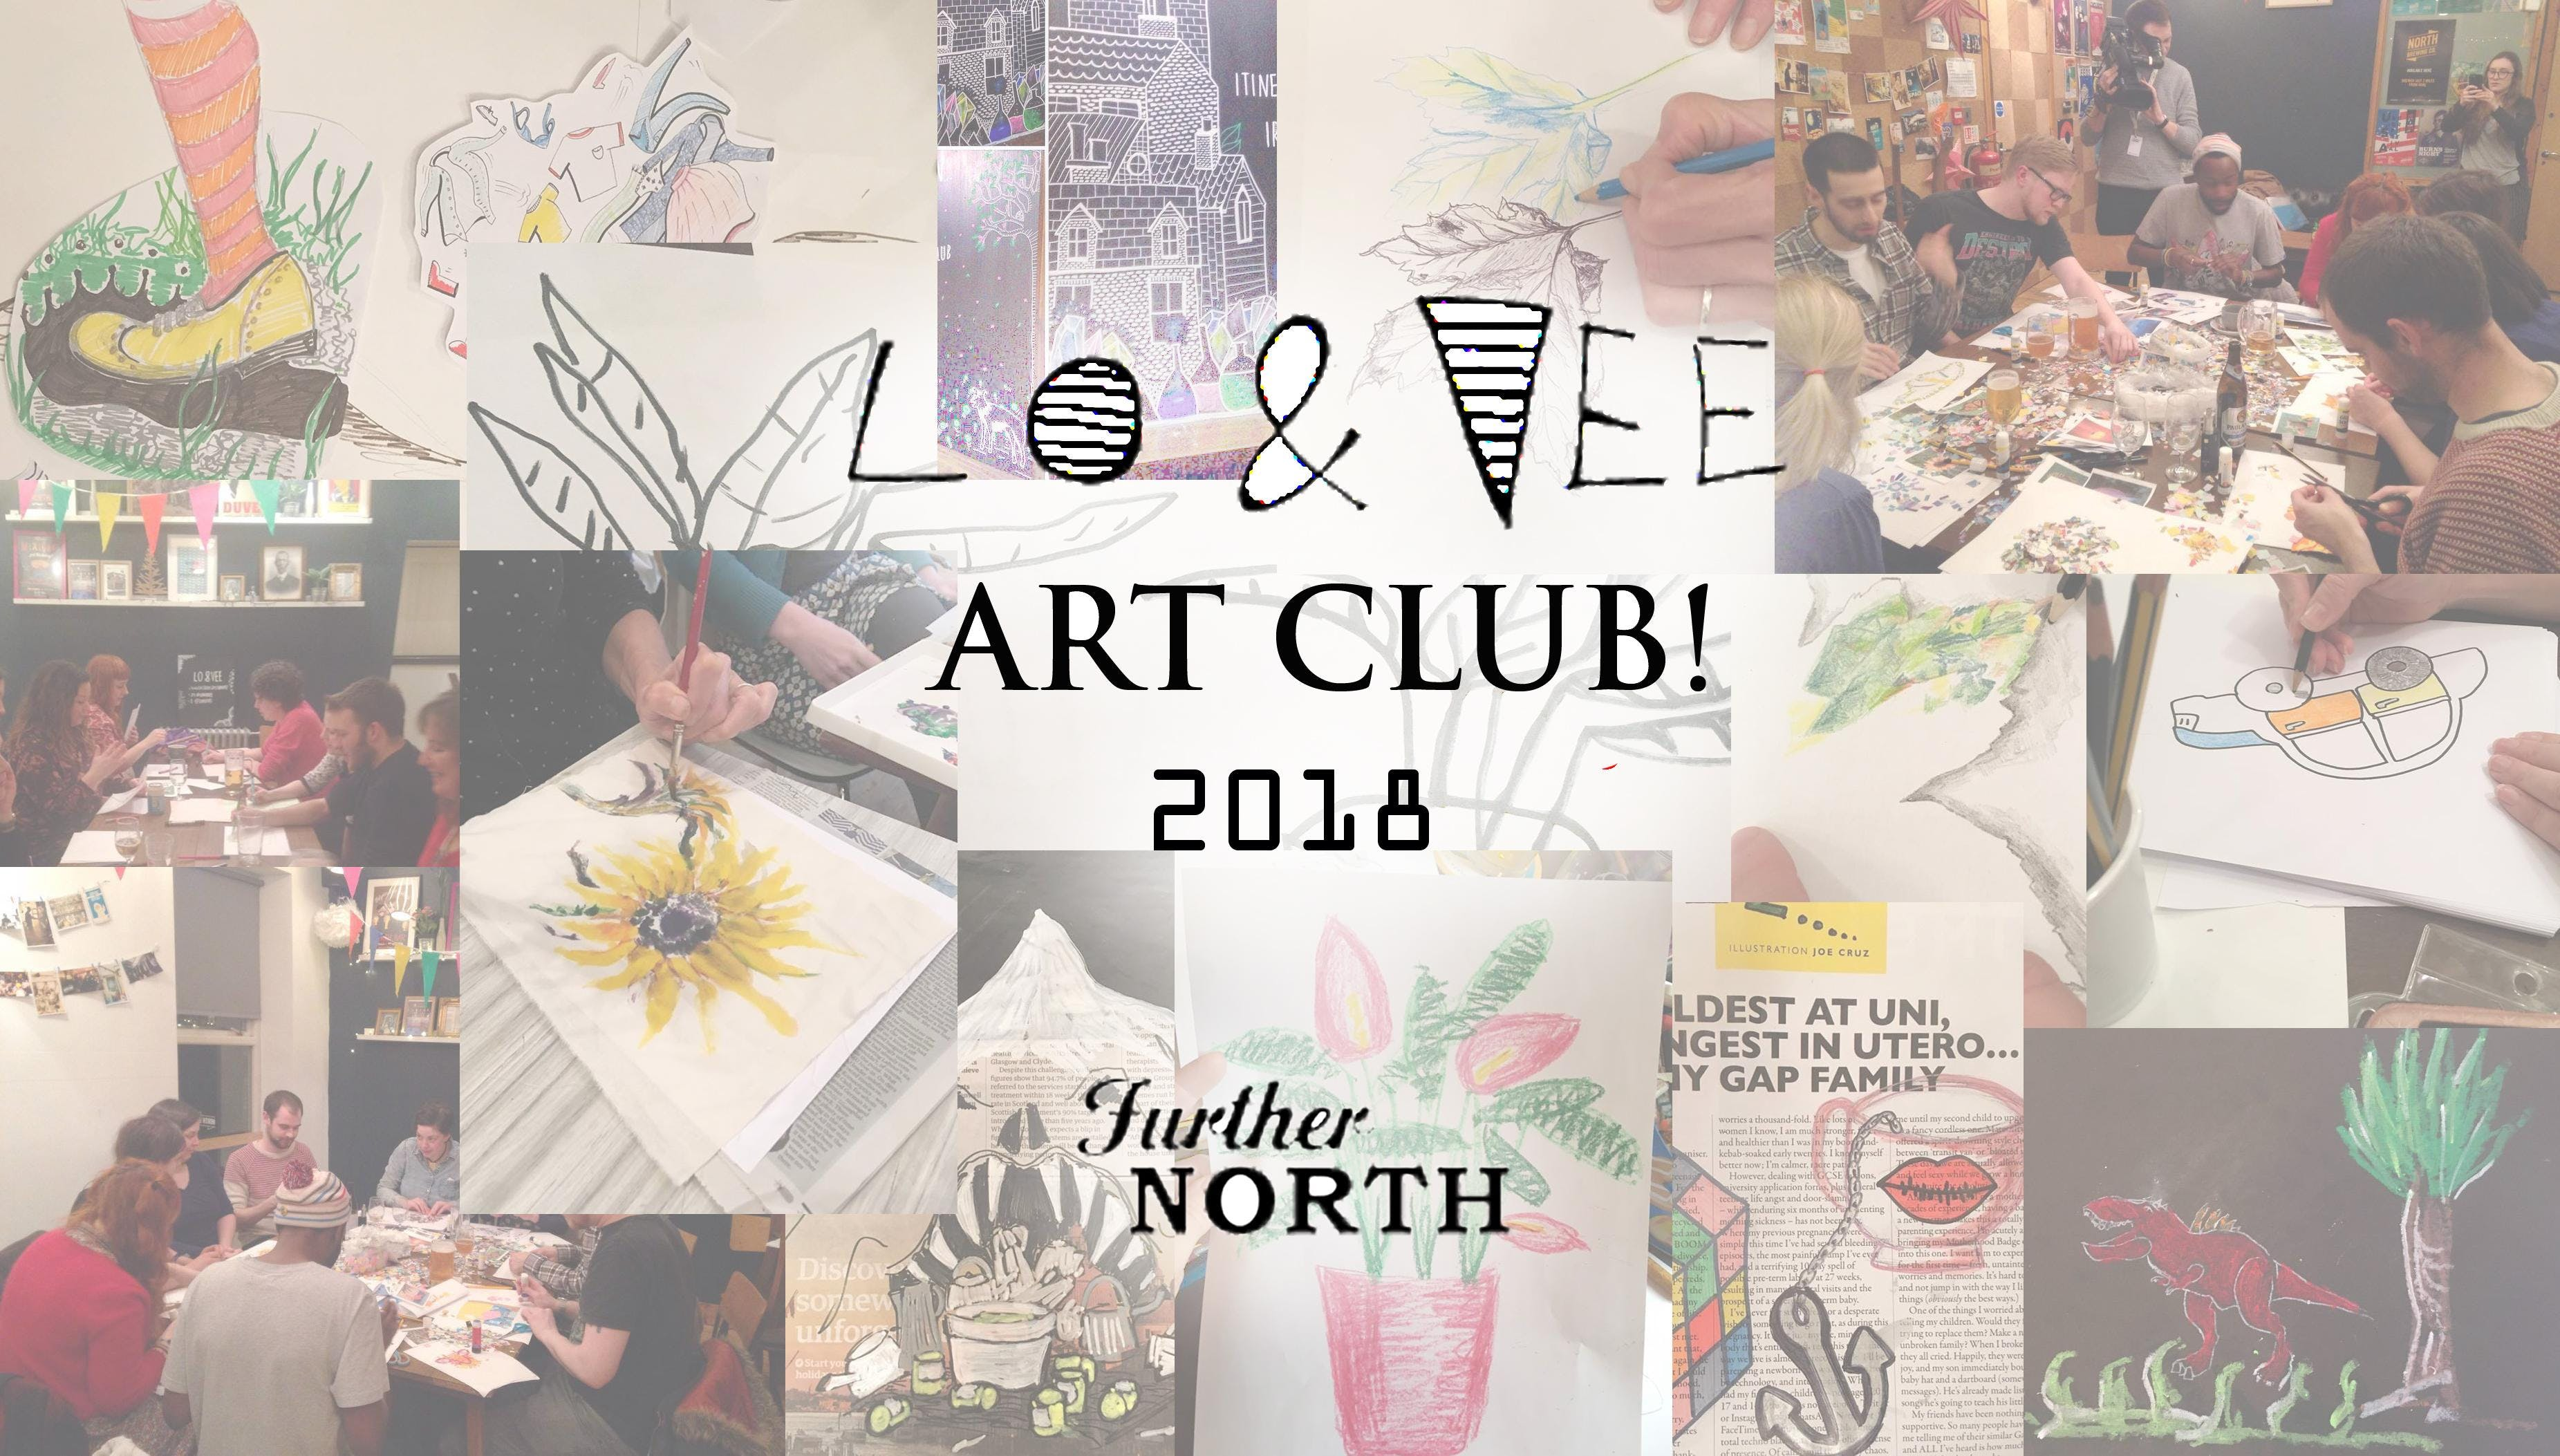 ART CLUB! Workshop By Lo & Vee - (£10 payment